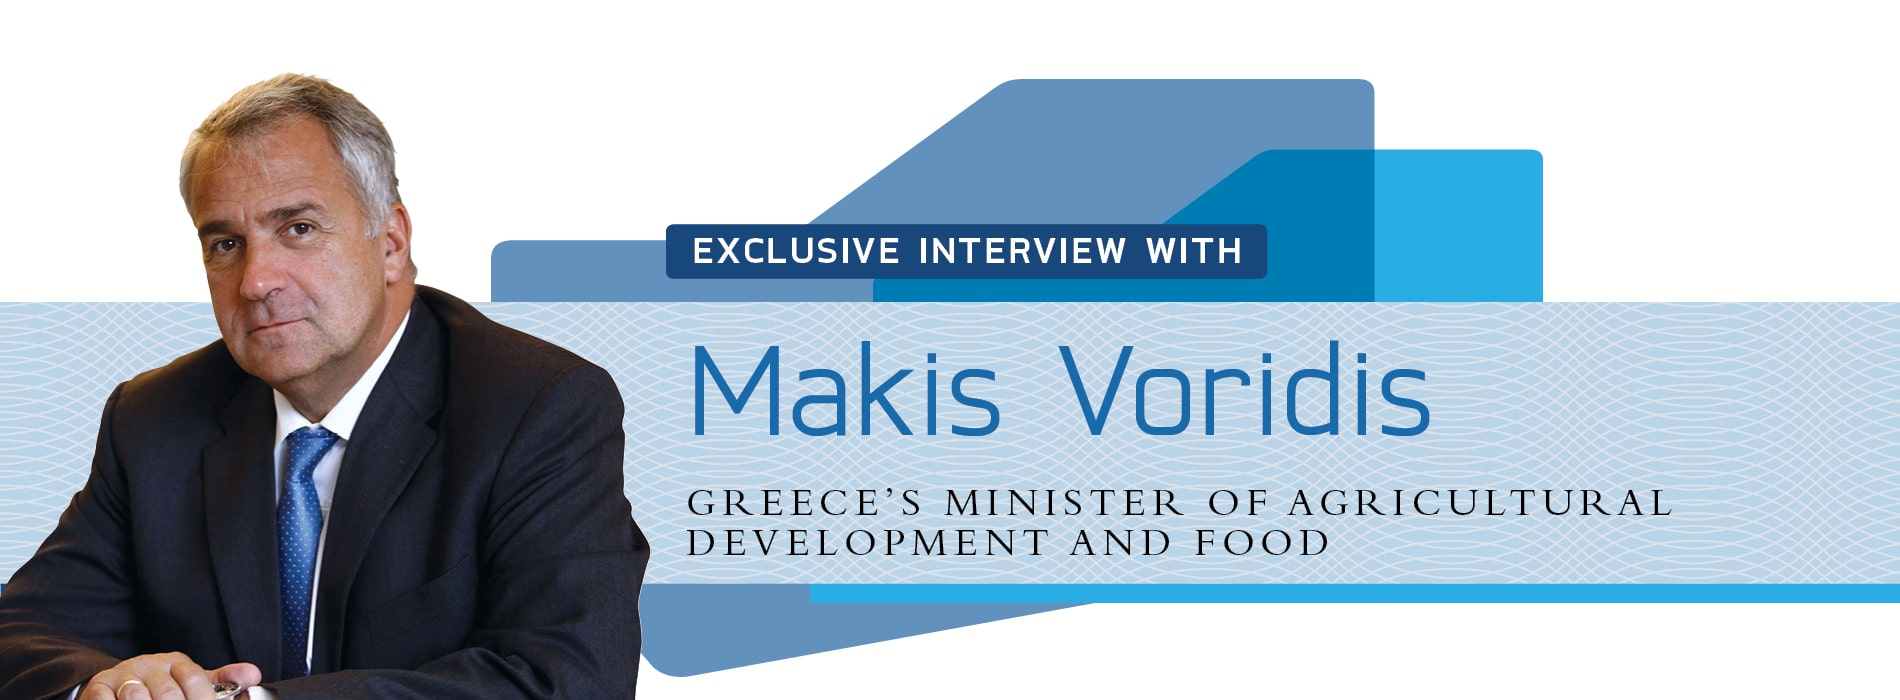 Interview with Makis Voridis,Greece's Minister of Agricultural Development